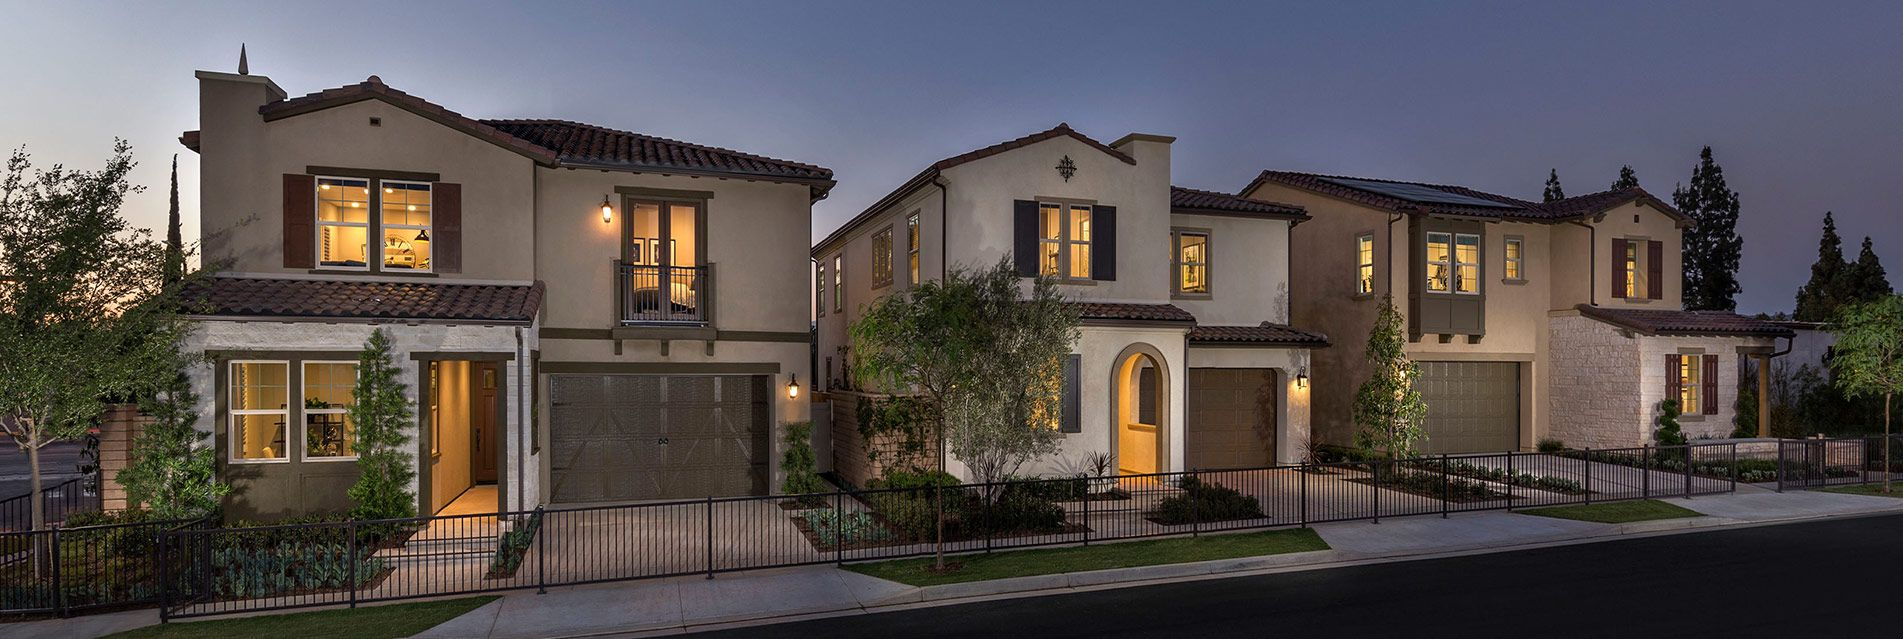 New Homes in Anaheim, CA   300 Subdivisions   NewHomeSource